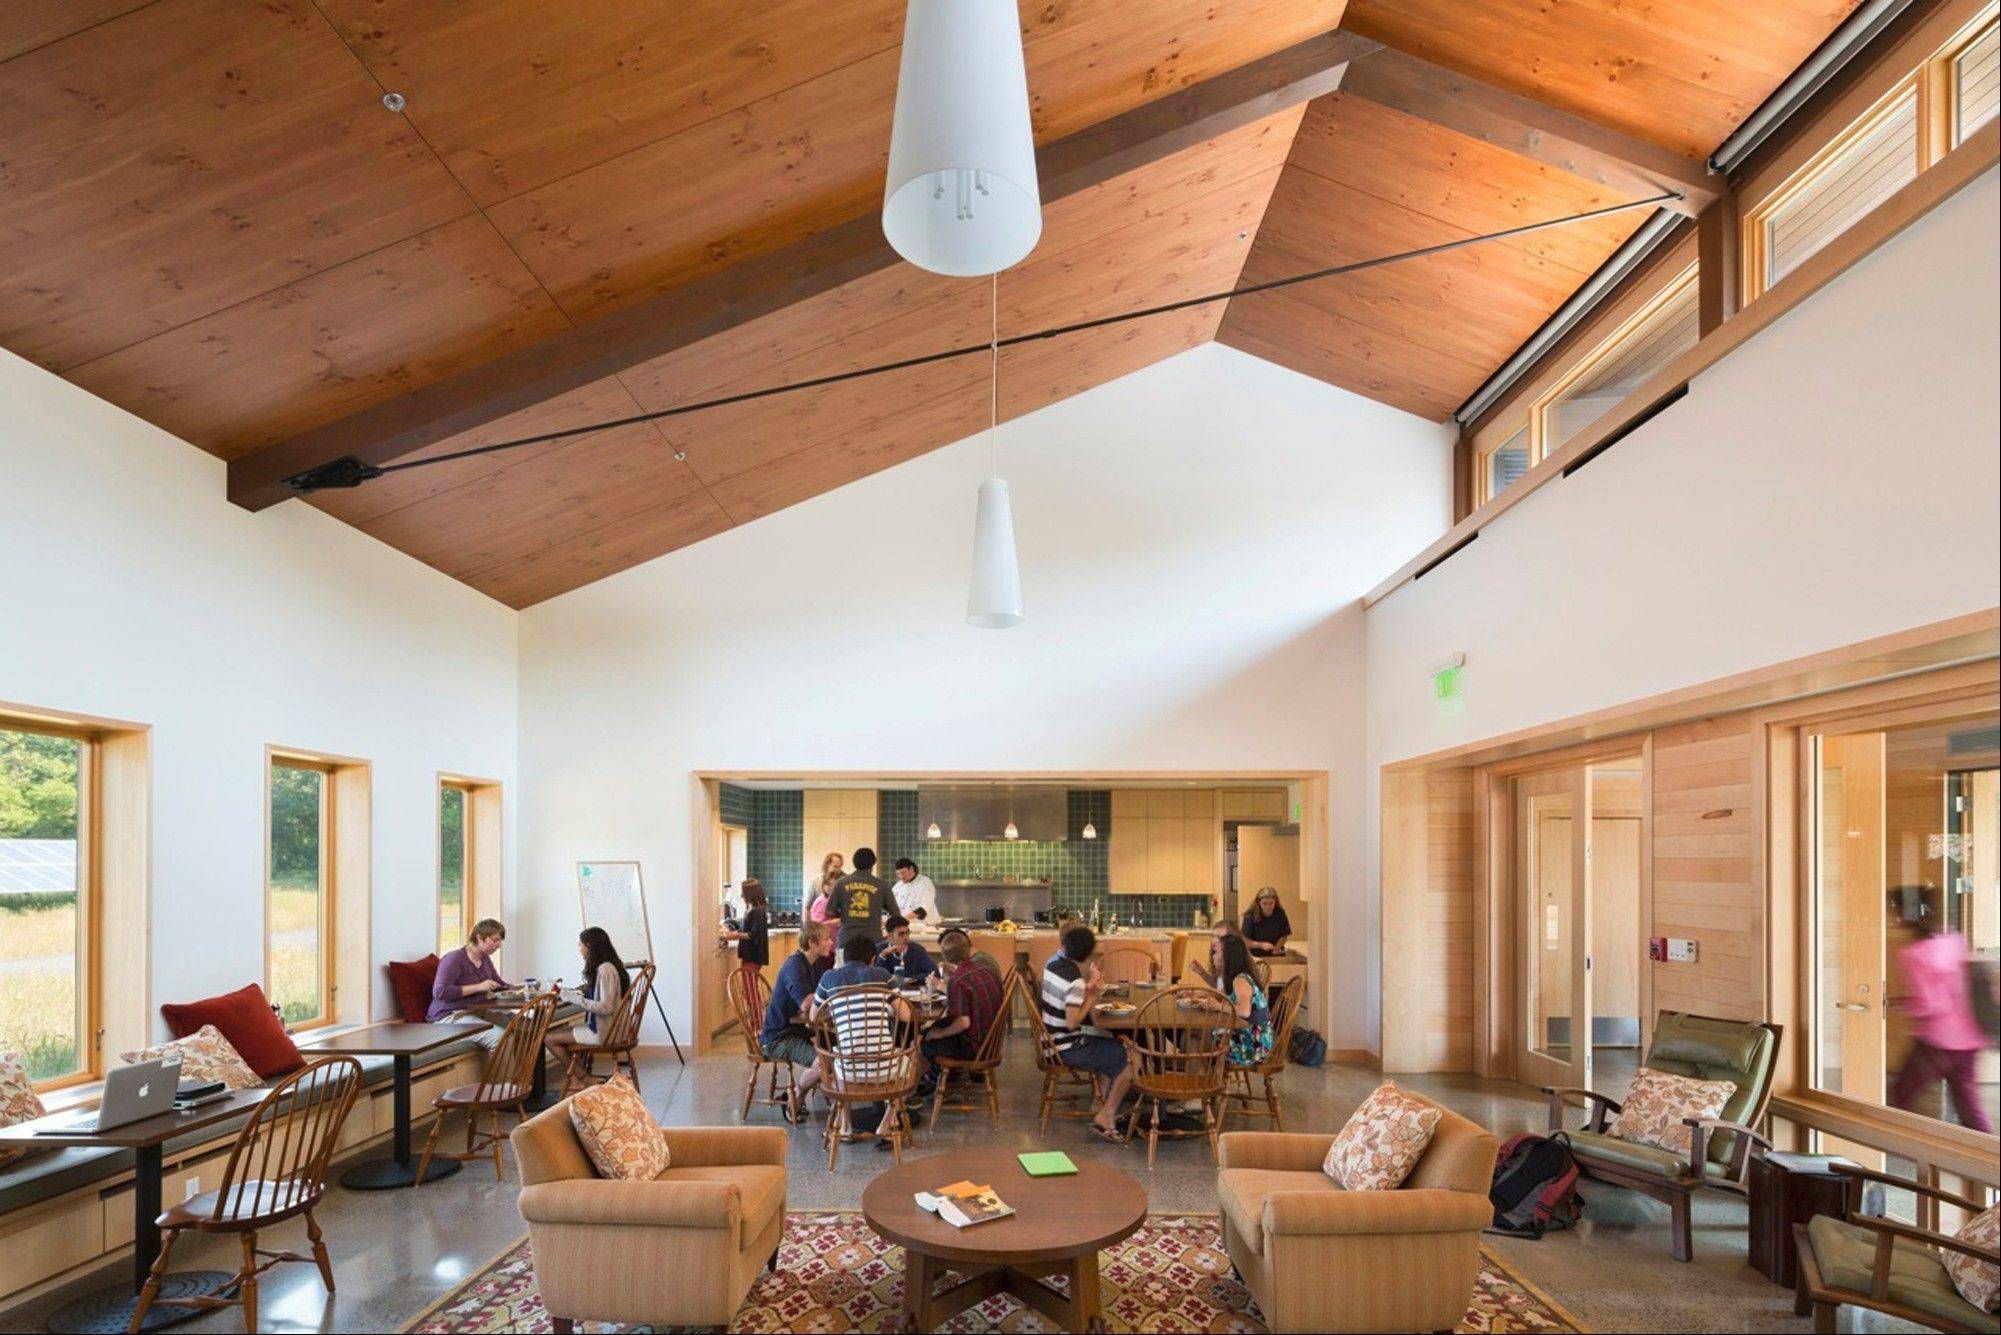 High windows offer ample daylight and summer cross ventilation in the common room of the Kohler Environmental Center.